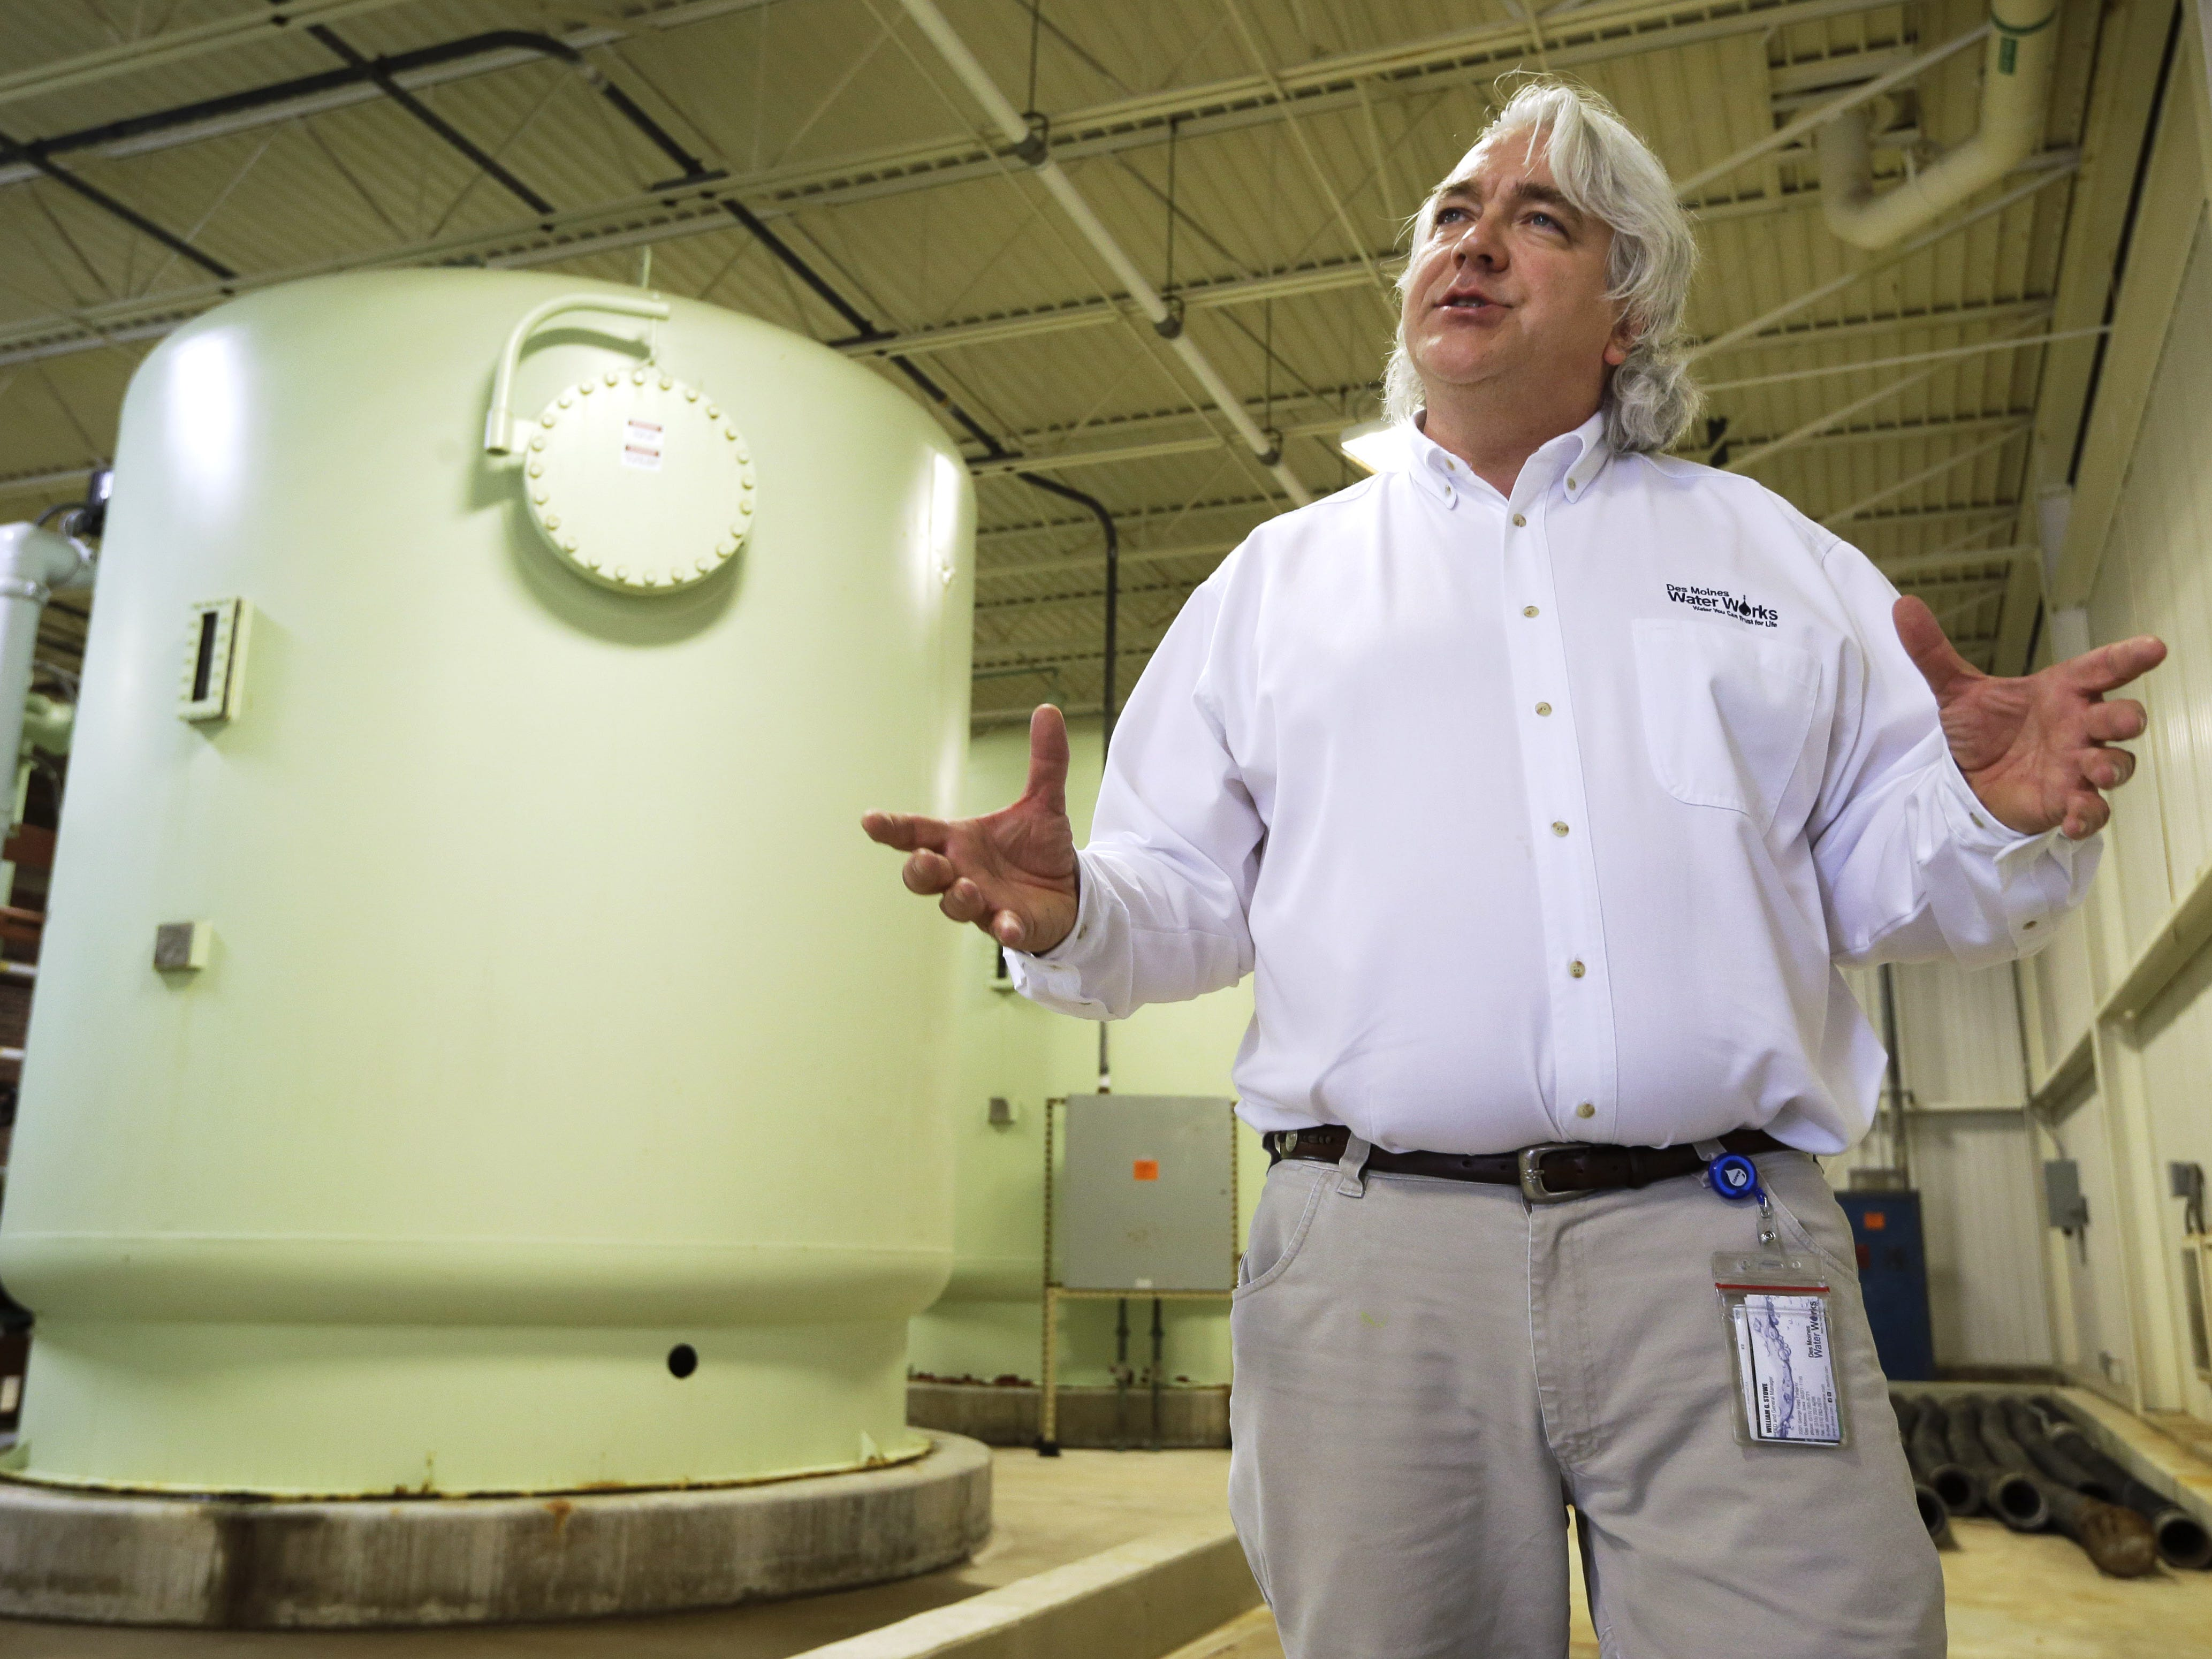 Bill Stowe stands in the Nitrate Removal Facility at the Water Works treatment plant in Des Moines. Nitrate levels in the Des Moines and Raccoon rivers in 2013 were exceeding federal limits again. Stowe said it's unheard of to have spikes so high in November. Nitrate levels on the two rivers used as sources for Des Moines' drinking water often peak in the spring when rain washes unused fertilizer from farm fields.